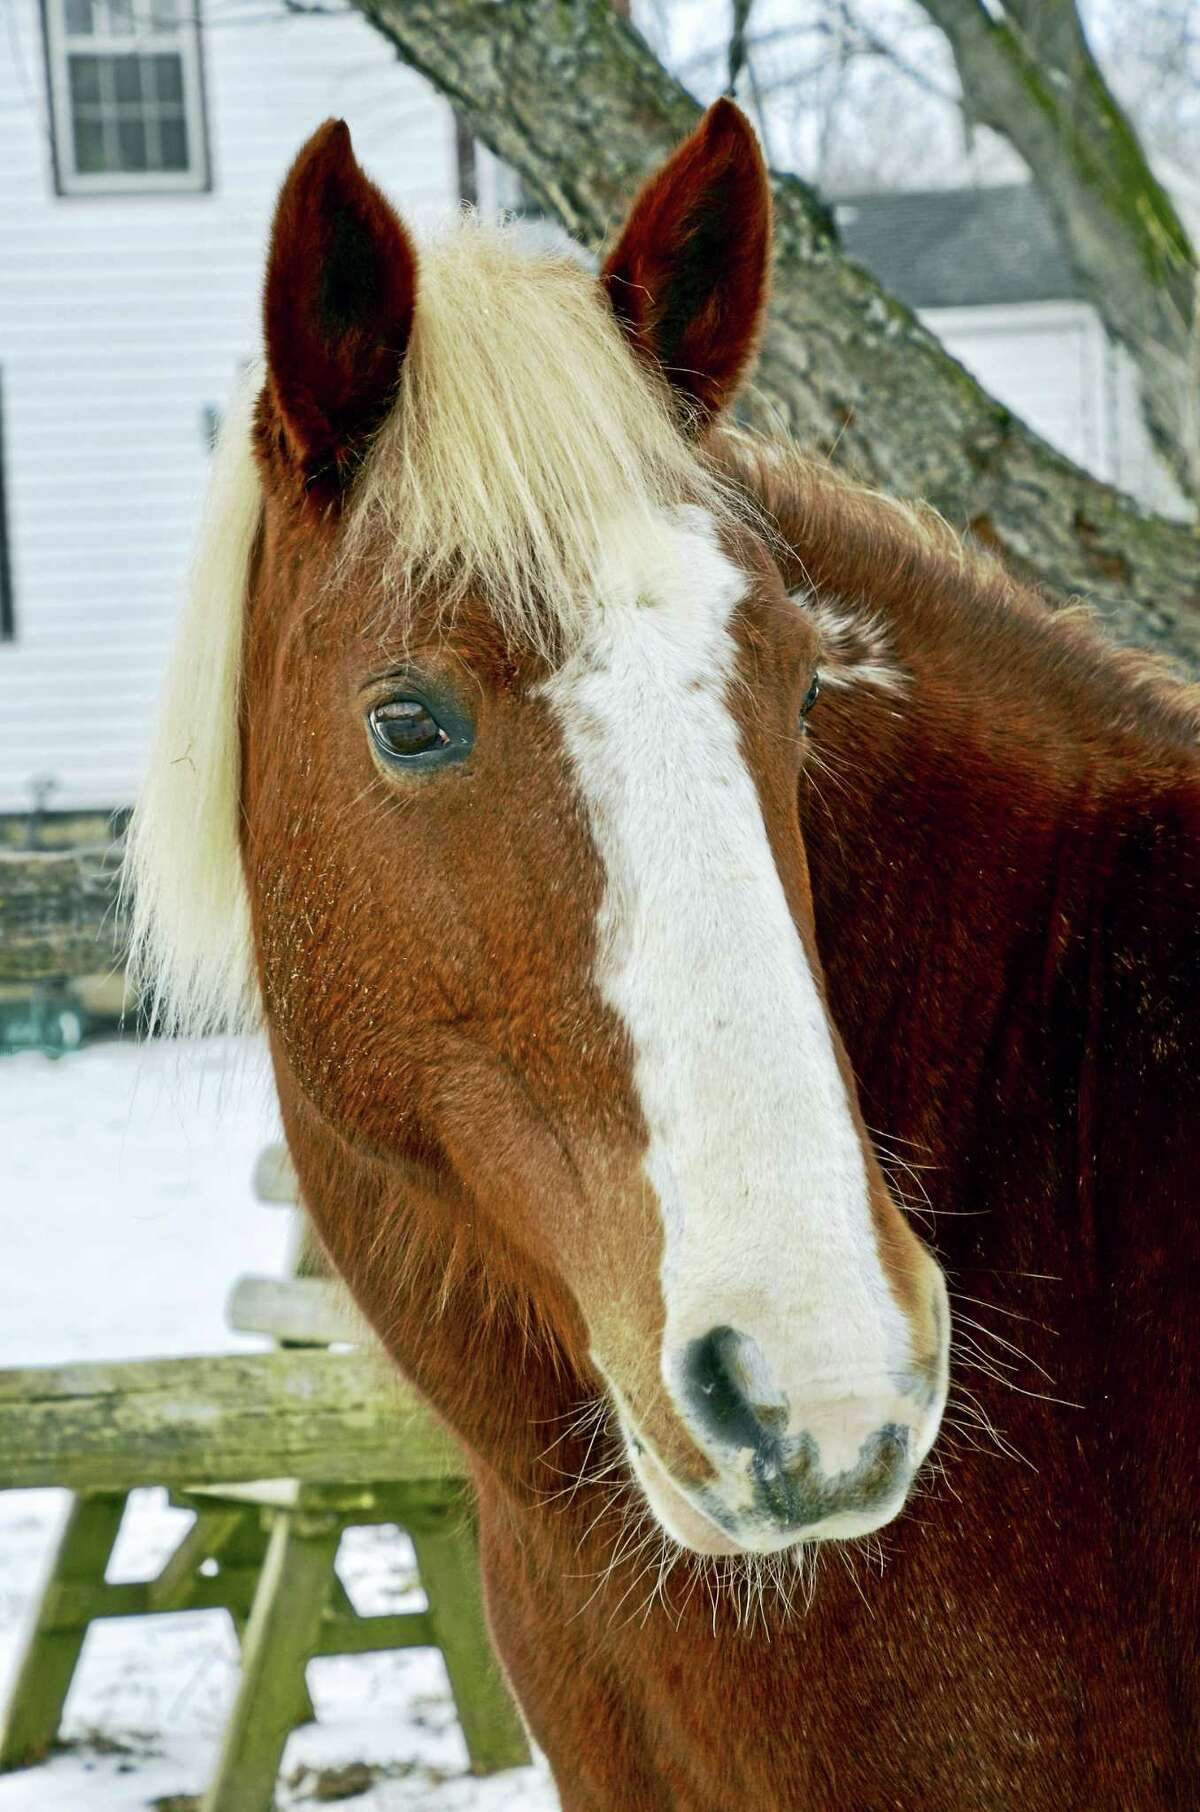 Sassafras, a beautiful Bureau of Land Management mustang mare. Washington, Connecticut; Saturday, June 10, 2017 - The Humane Organization Represent-ing Suffering Equines (H.O.R.S.E. of Connecticut), now celebrating their 36th year, will hold a spring Horse Showing on Saturday, June 10th, from 1:00 p.m. to 3:00 p.m. to show the many horses available for adoption, lease and sponsor. In addition to meeting our wonderful horses, there will be a TACK SALE from 12:00 p.m. to 3:00 p.m. for those looking for saddles, blankets and other equipment. H.O.R.S.E. of Connecticut is located at 43 Wilbur Road, Washington, CT. For more info about our horses or upcoming events, please visit www.horseofct.org or call 860-868-1960.